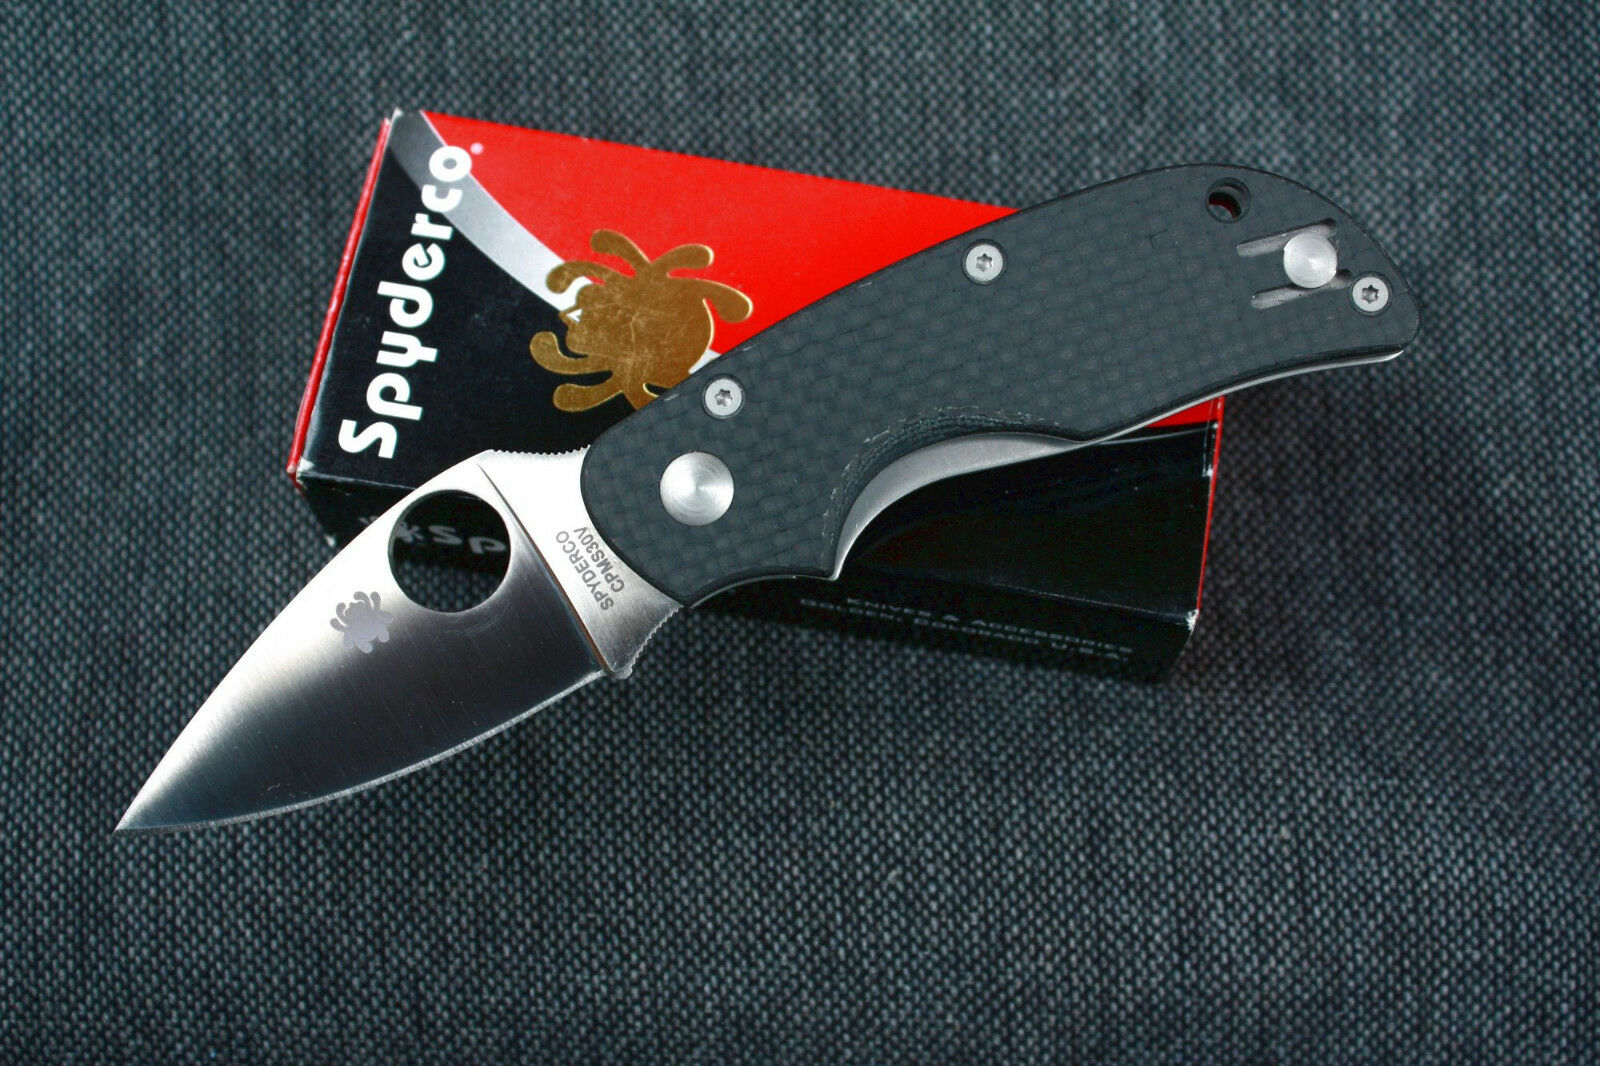 Spyderco C129CFP  Cat knife messer  shop online today